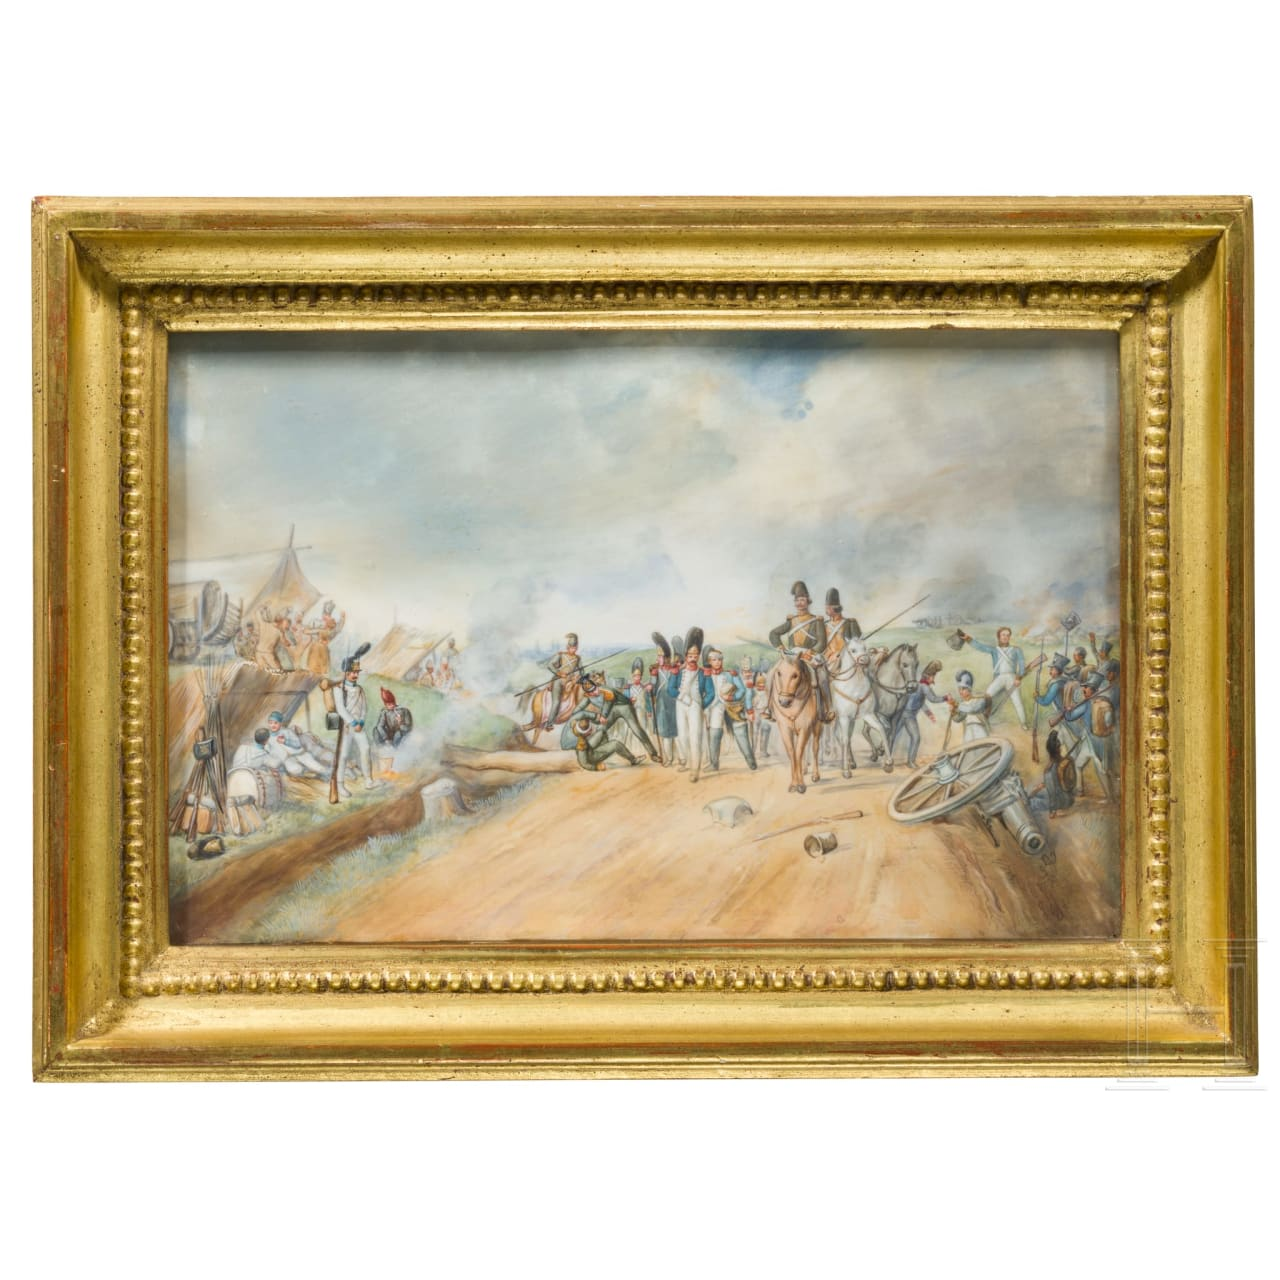 The Battle of Paris (Montmartre) on 30.3.1814 - a miniature on ivory, first half of 19th century